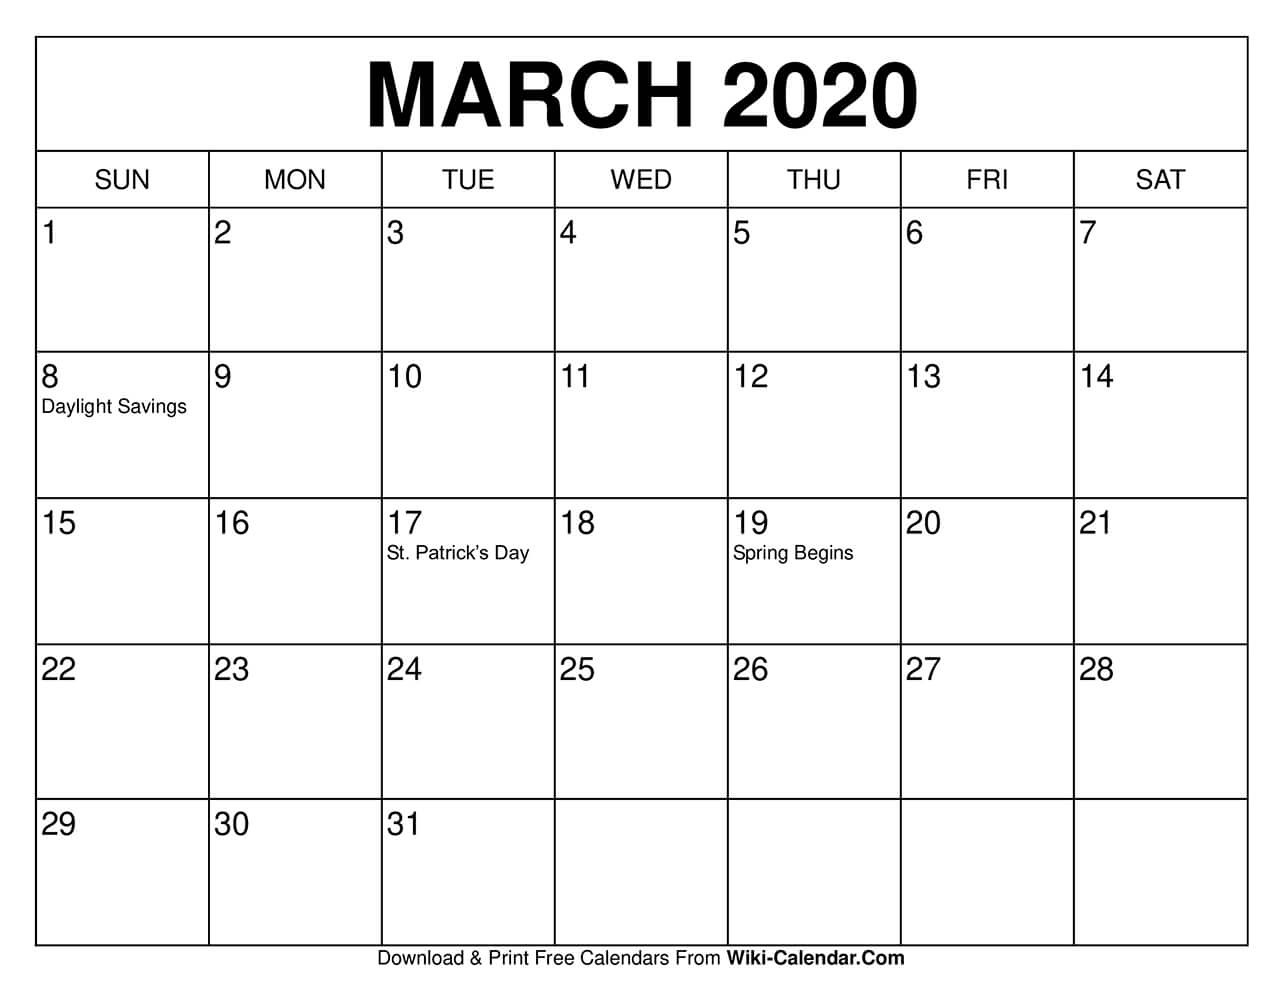 Free Printable March 2020 Calendars-Day To Day Calendar Template 2020